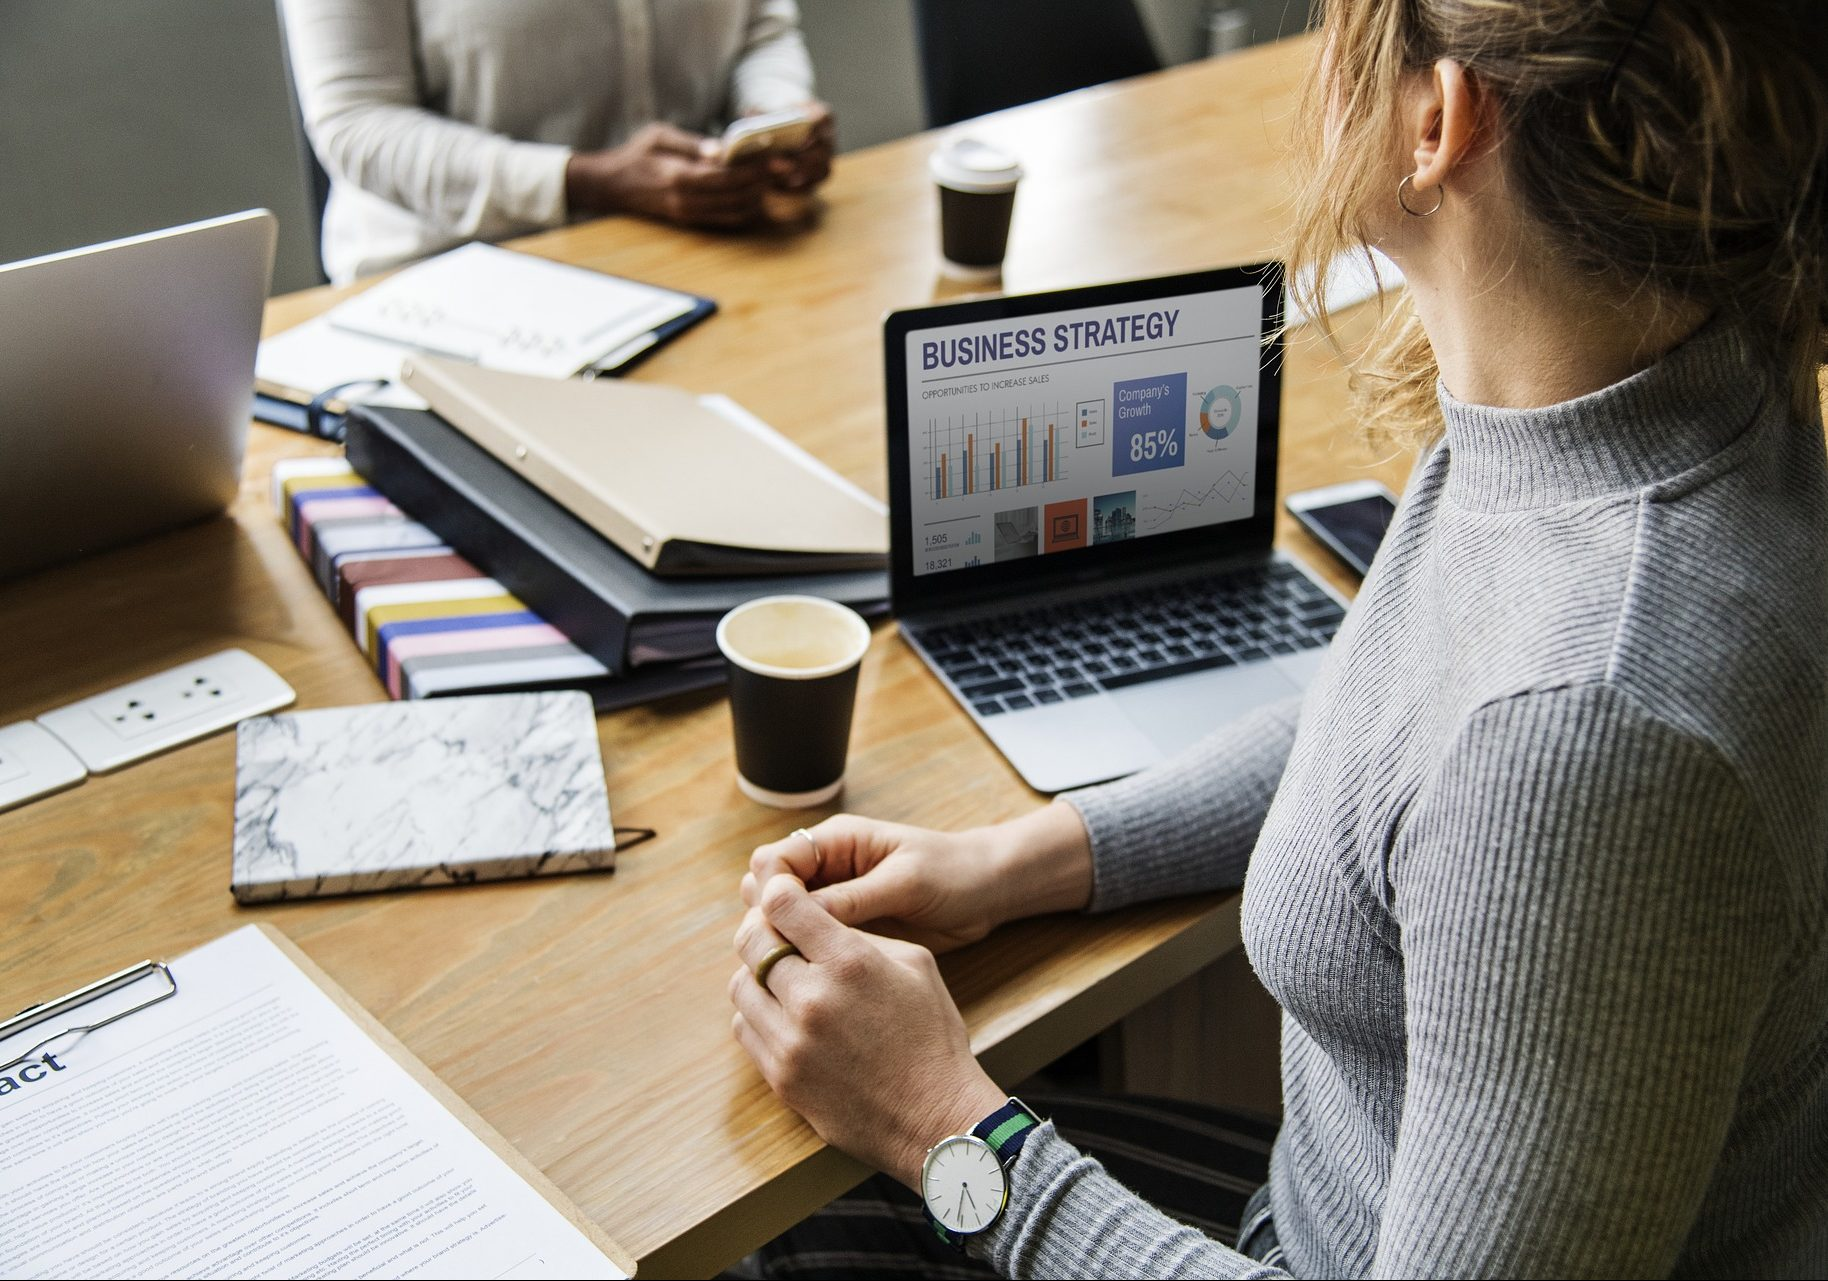 How to improve the computer without financial investments